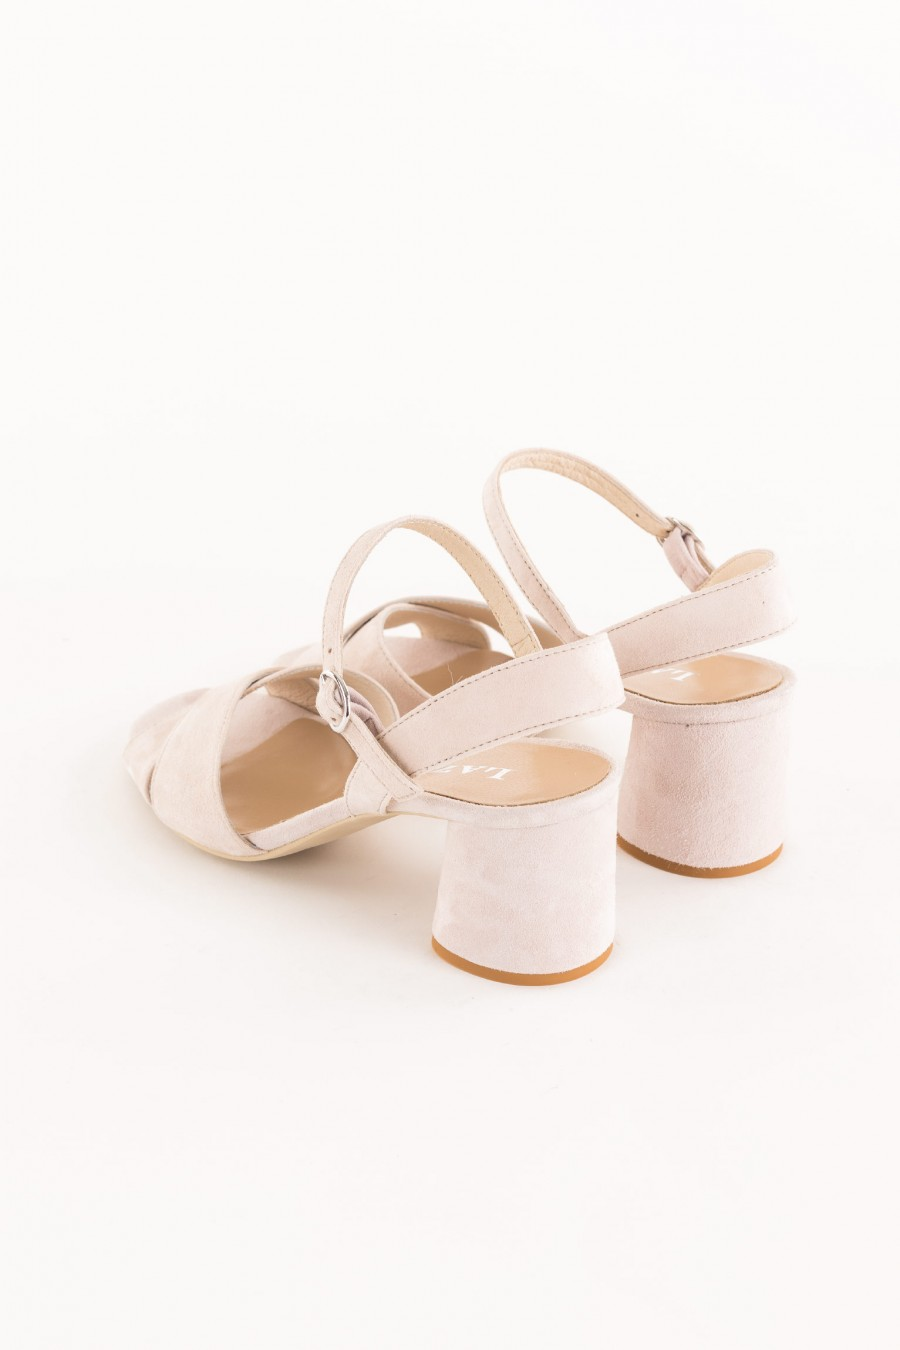 nude sandal with band